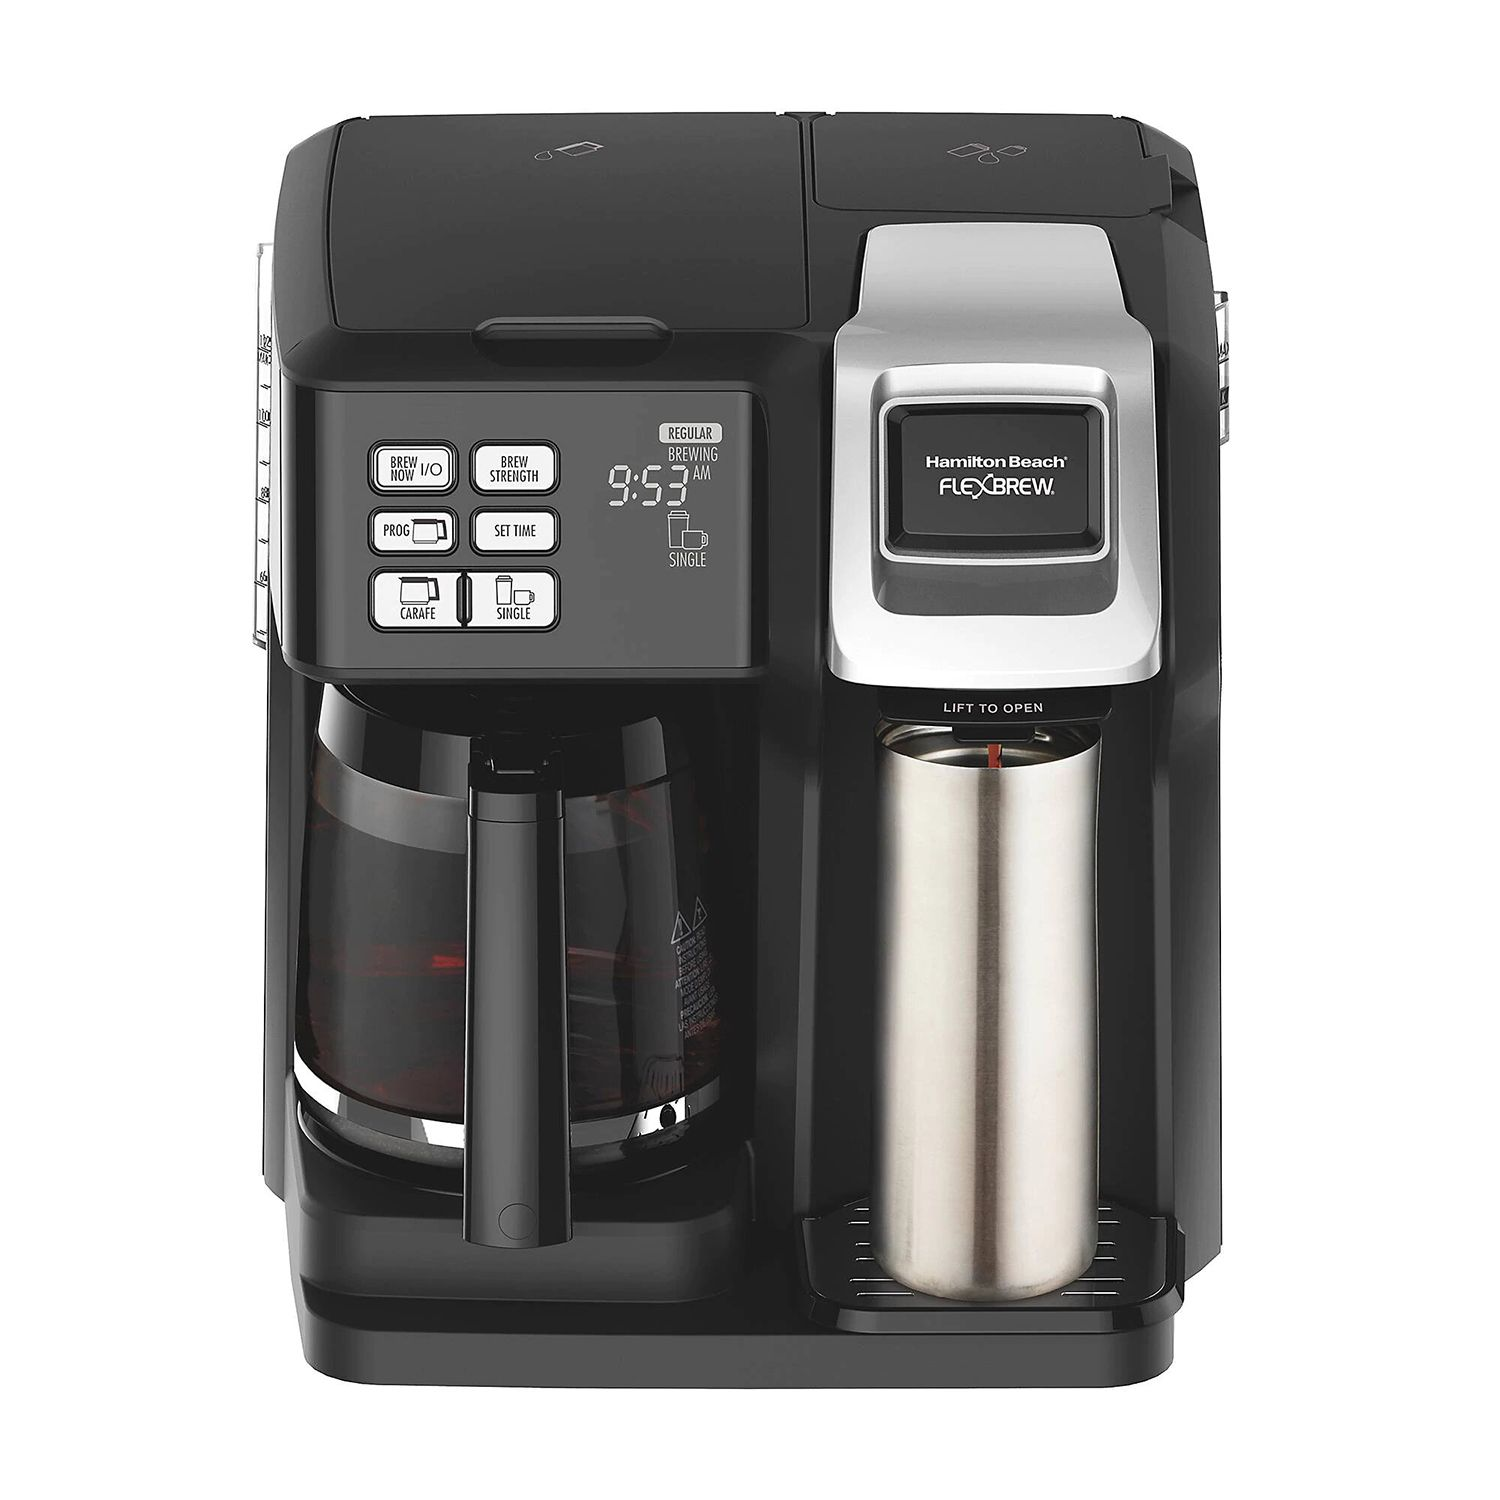 Real Simple Editors Recommend These 12 Wfh Essentials In 2020 Single Coffee Maker Coffee Maker Hamilton Beach